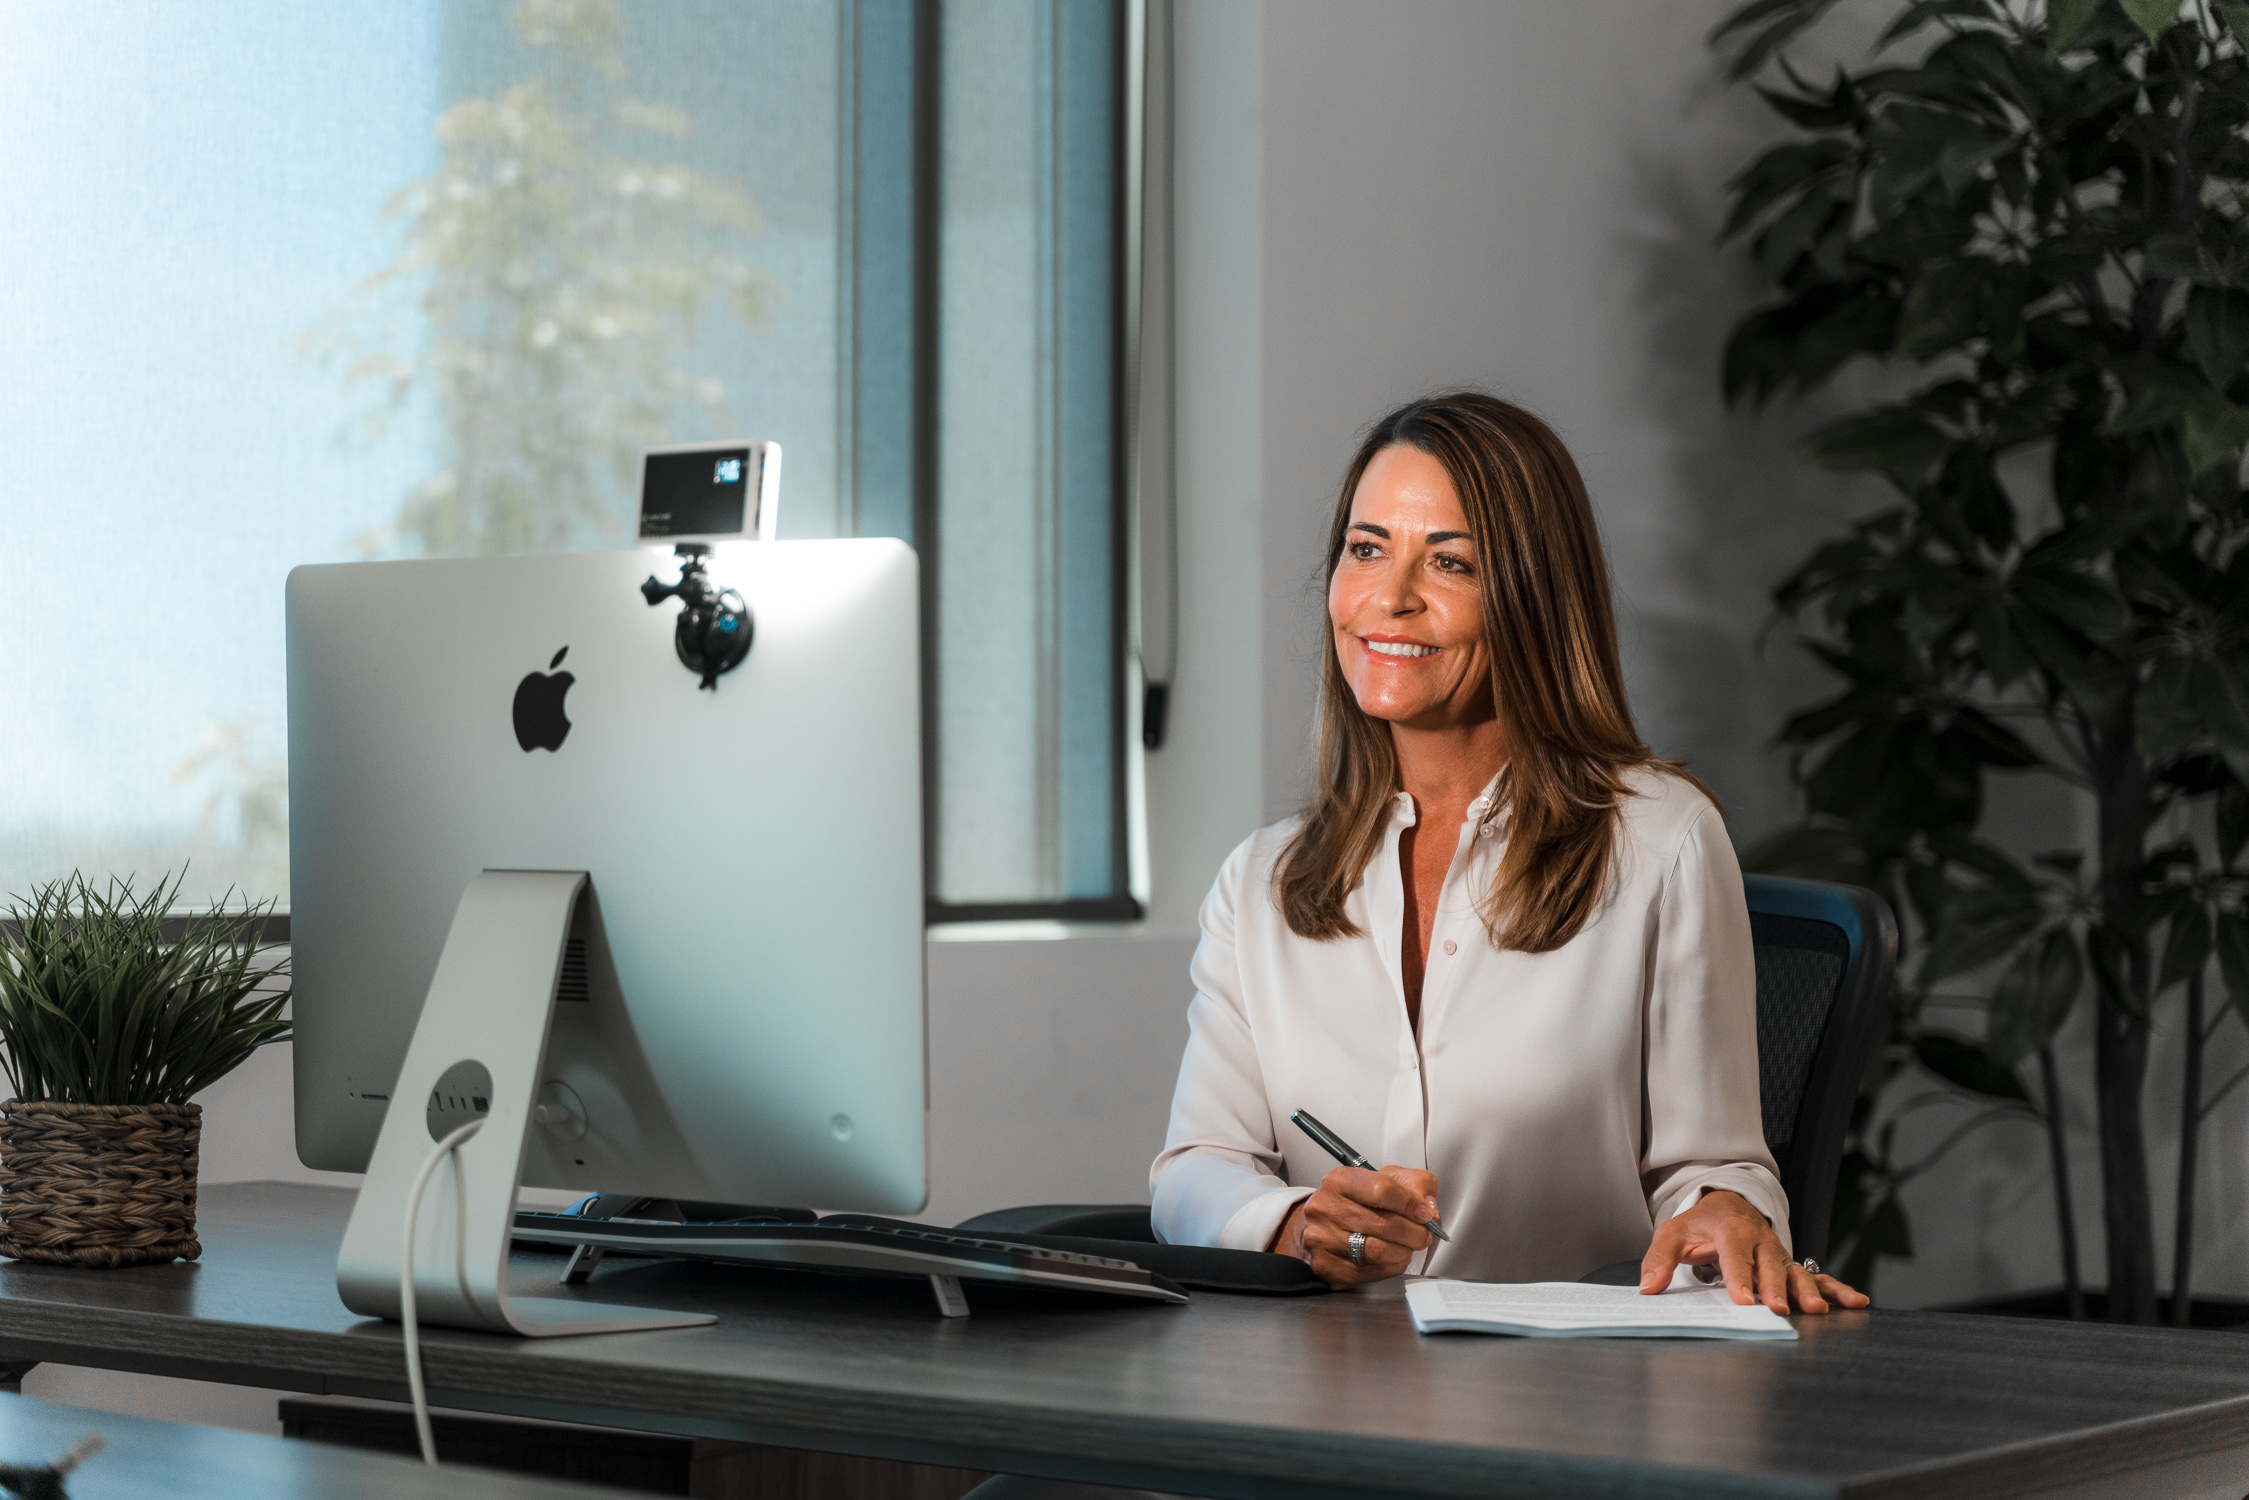 woman on virtual work meeting using the video conferencing lighting kit